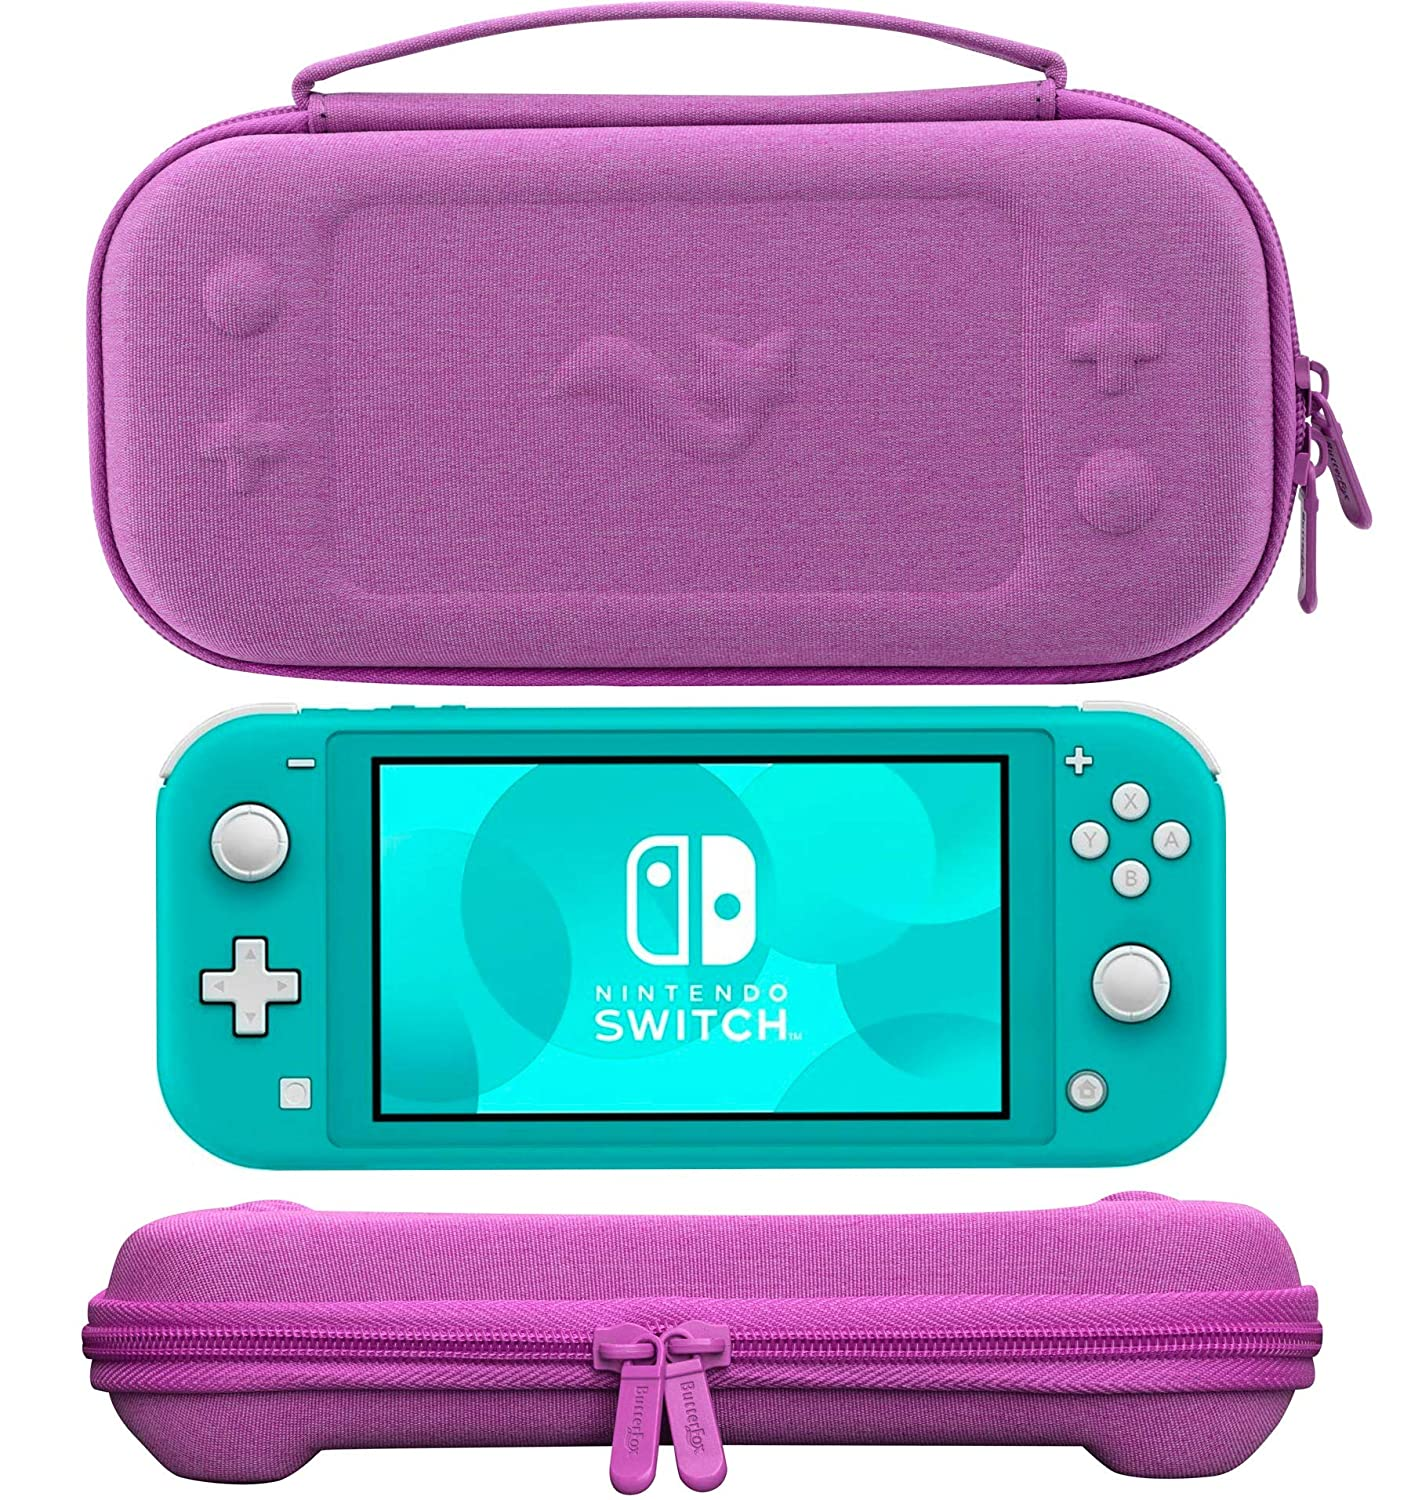 ButterFox - Funda de Transporte para Nintendo Switch Lite ...